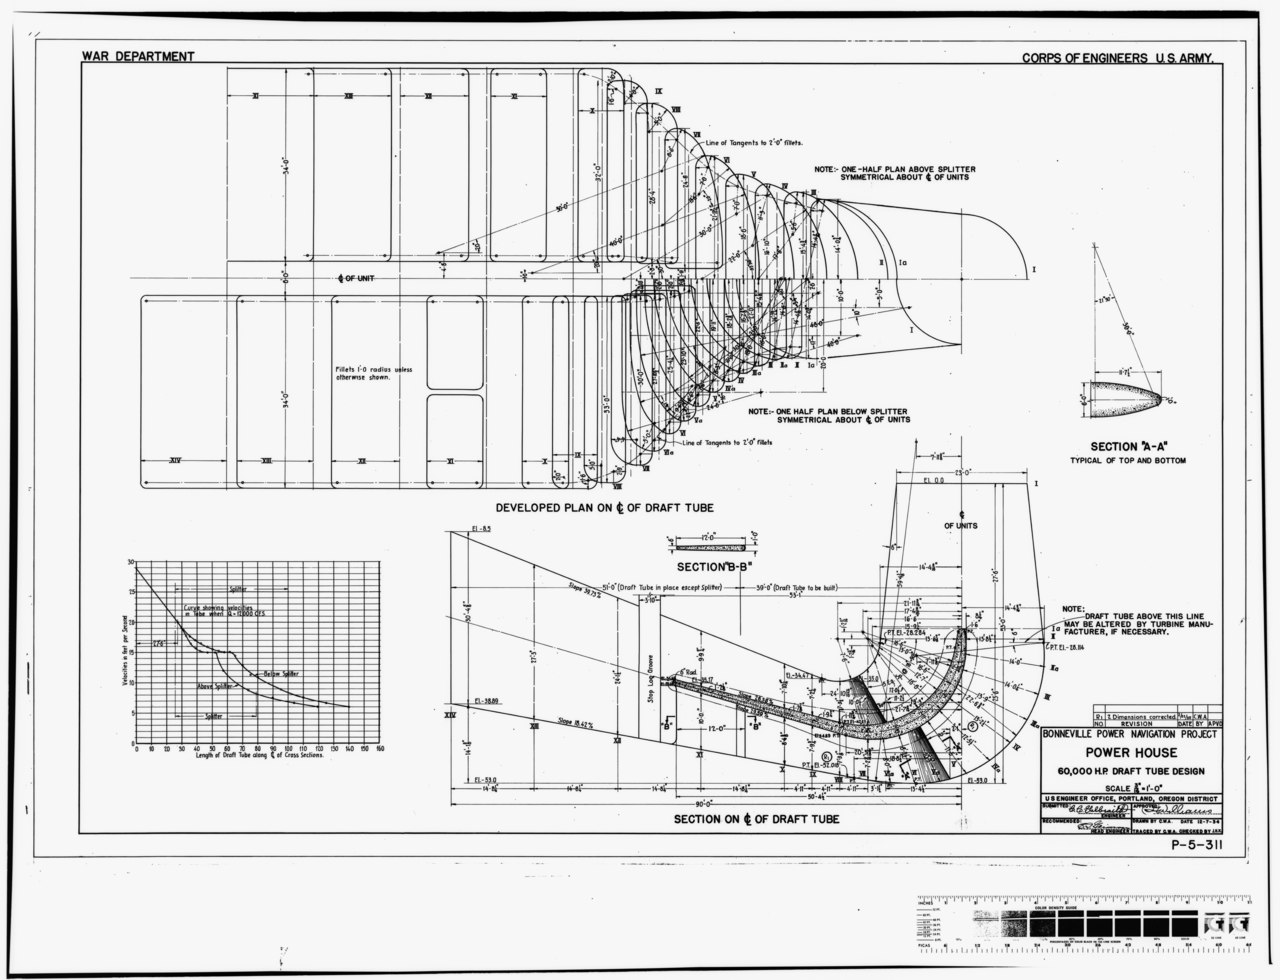 File Photocopy Of Original Construction Drawing Dated 7